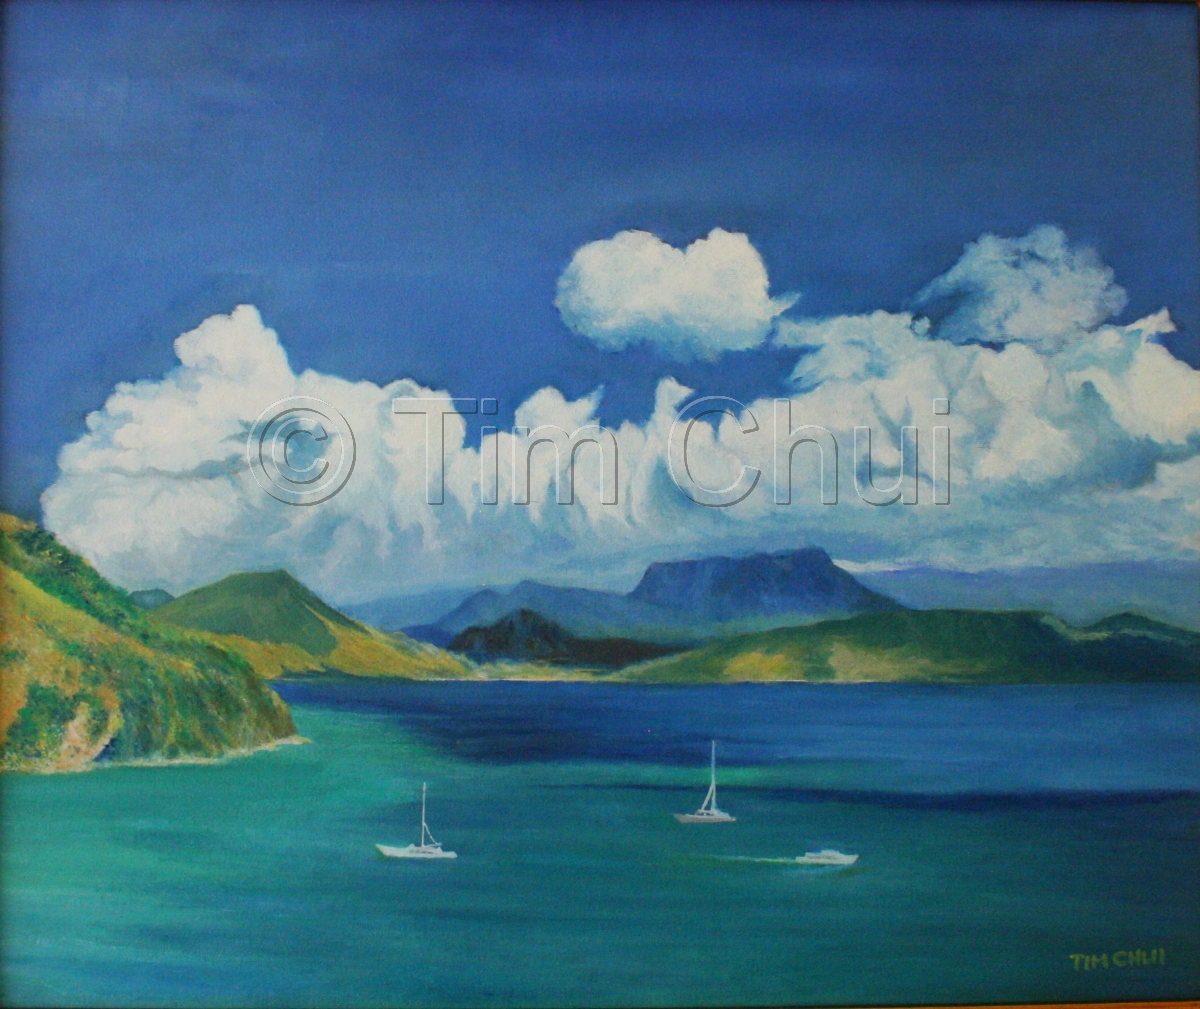 St. Kitts & Nevis Island (large view)